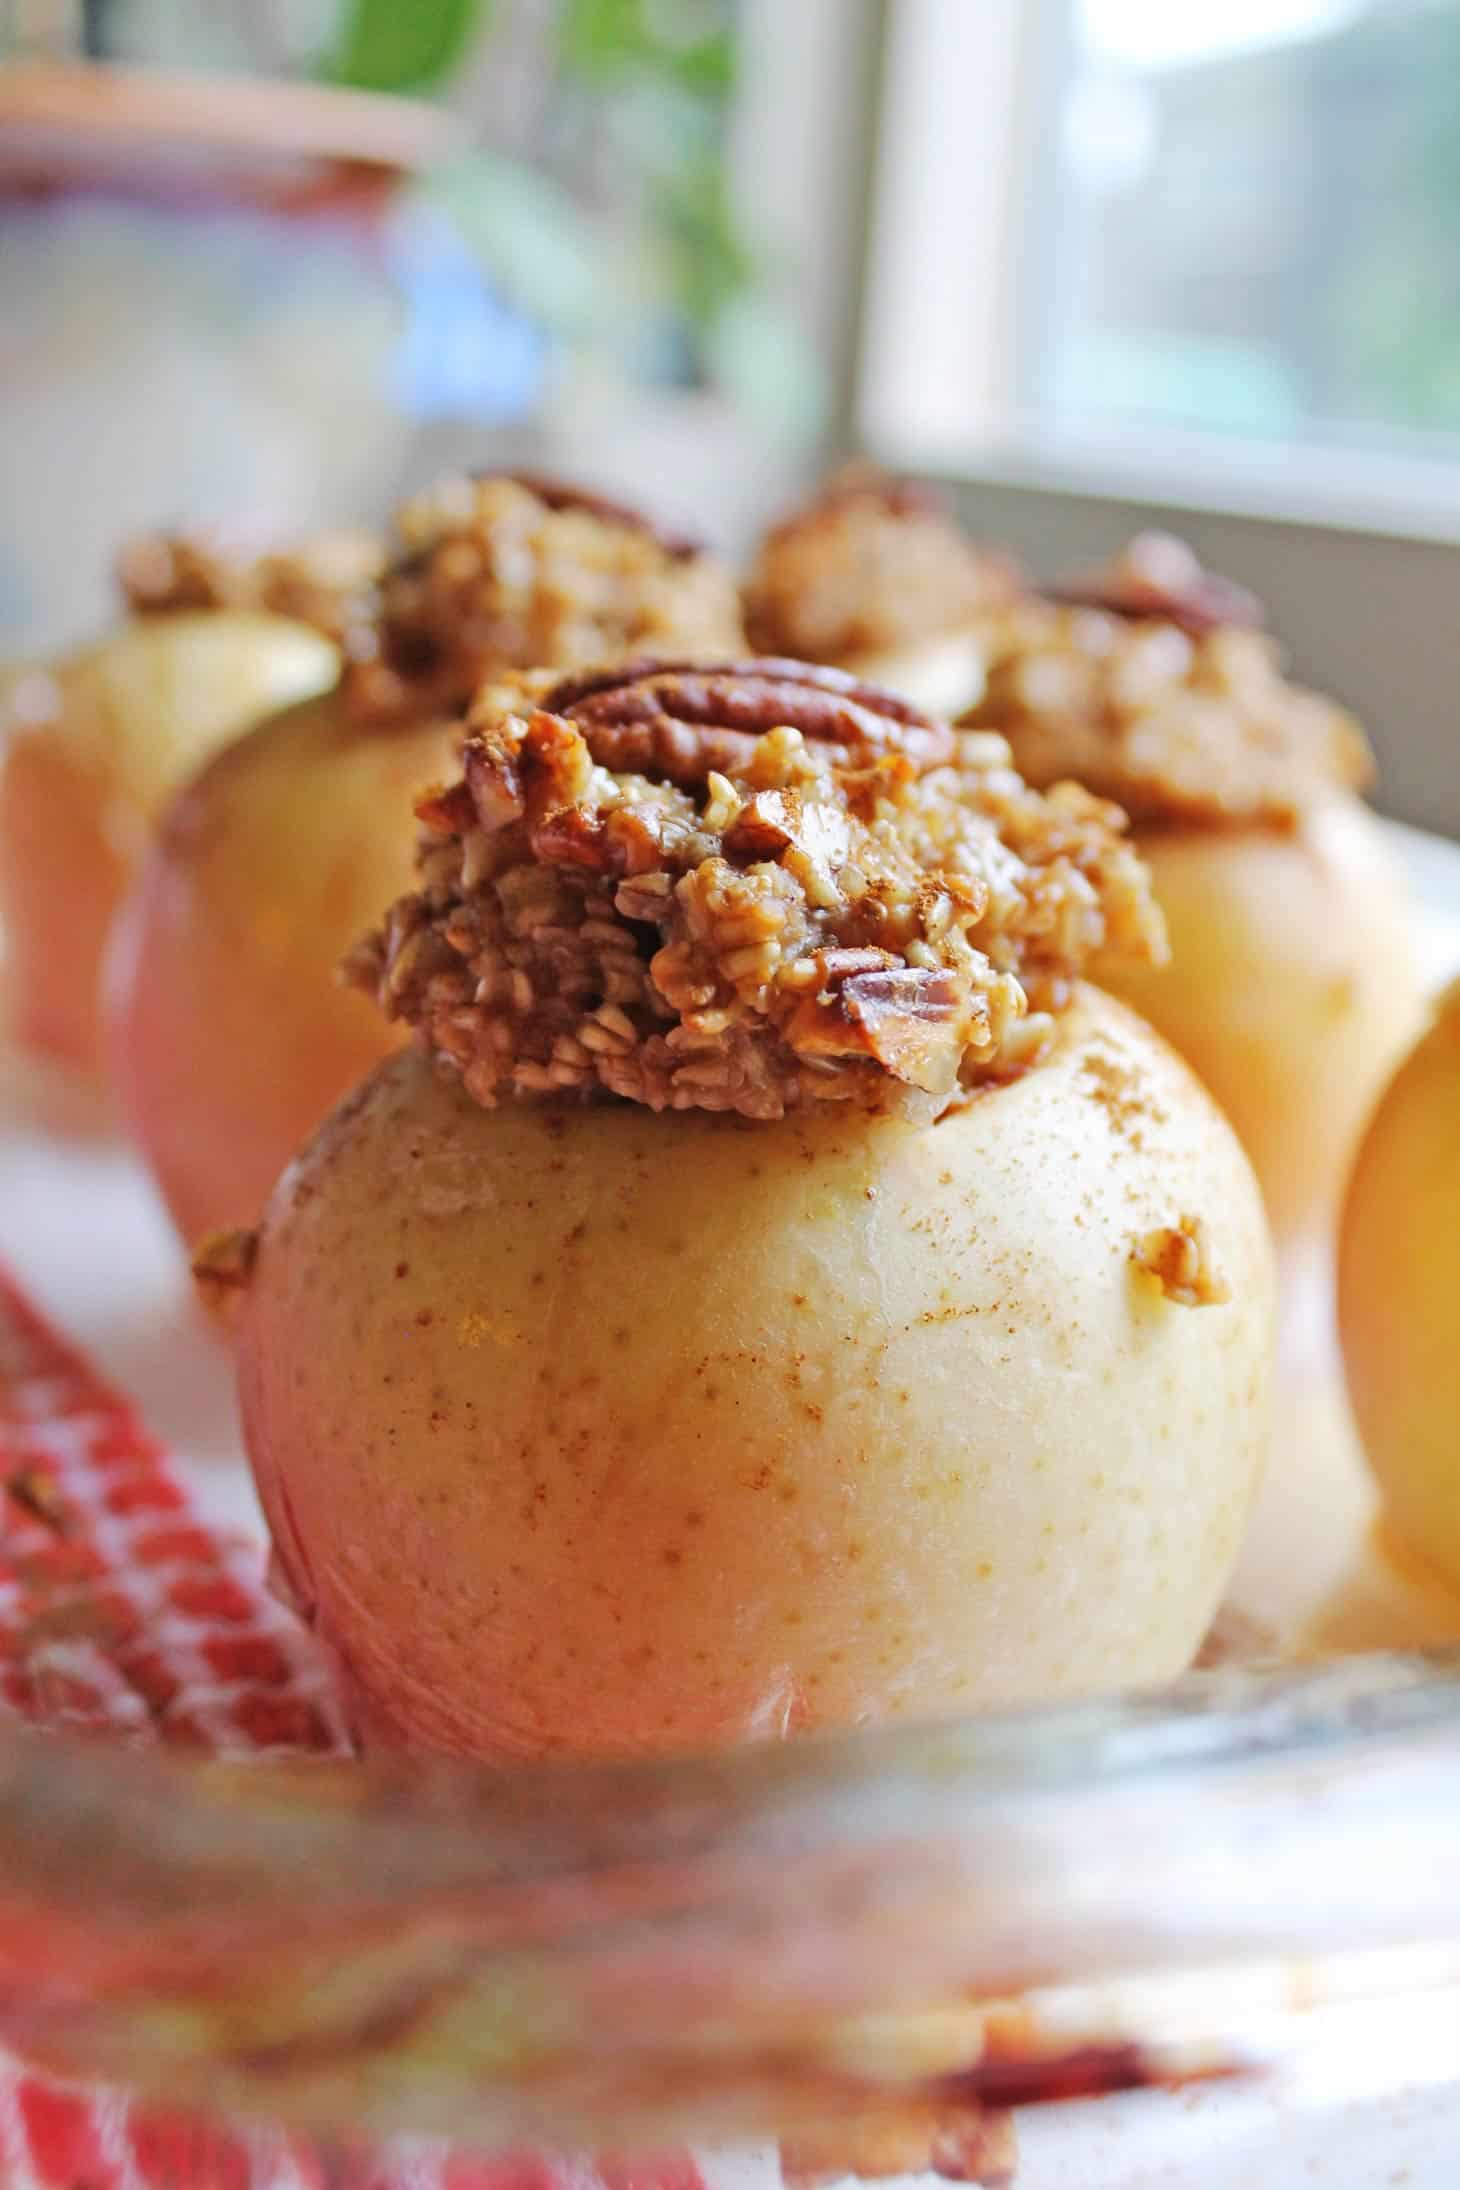 Cozy Breakfast Baked Apples With Oatmeal Rhubarbarians